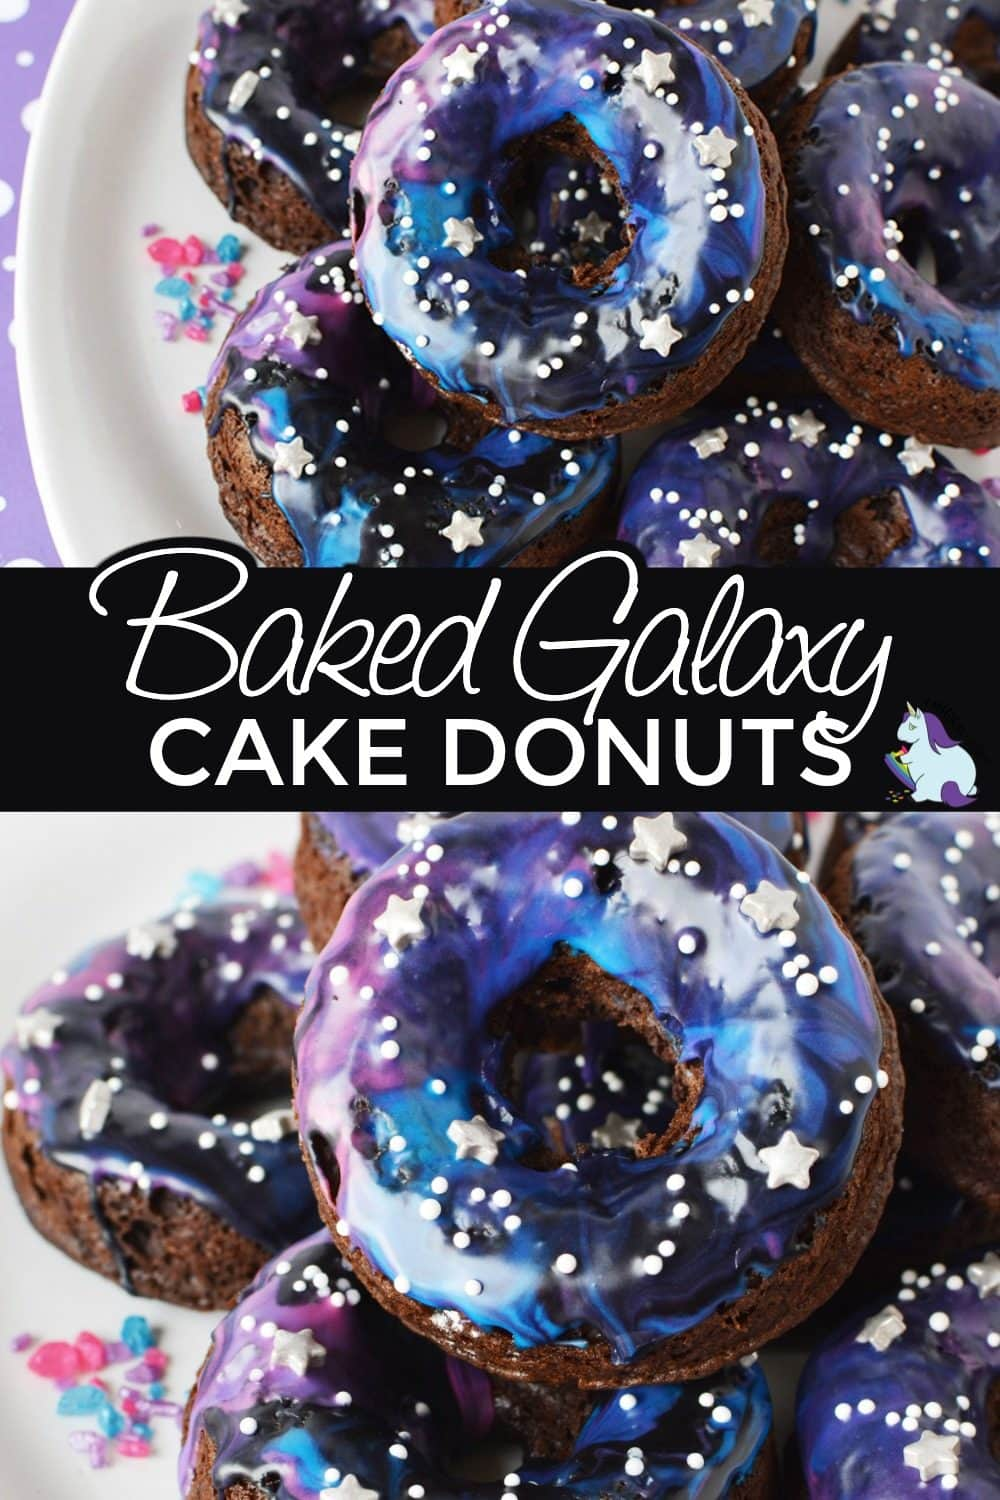 Baked cake donuts on a plate. Galaxy donuts stacked.